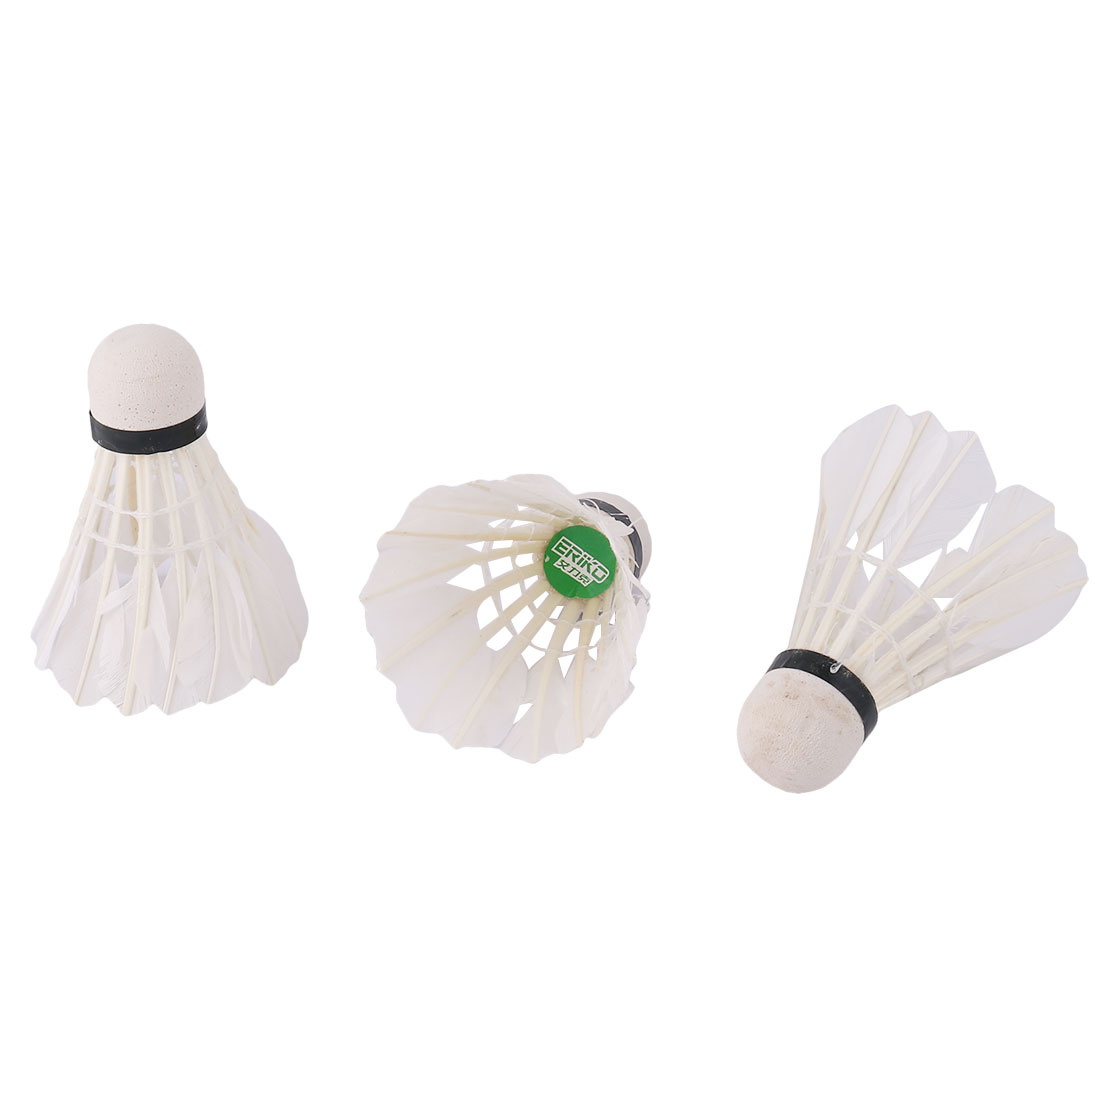 Sports Cone Shape Goose Feather Badminton Shuttlecock Carboard White 3 Pcs